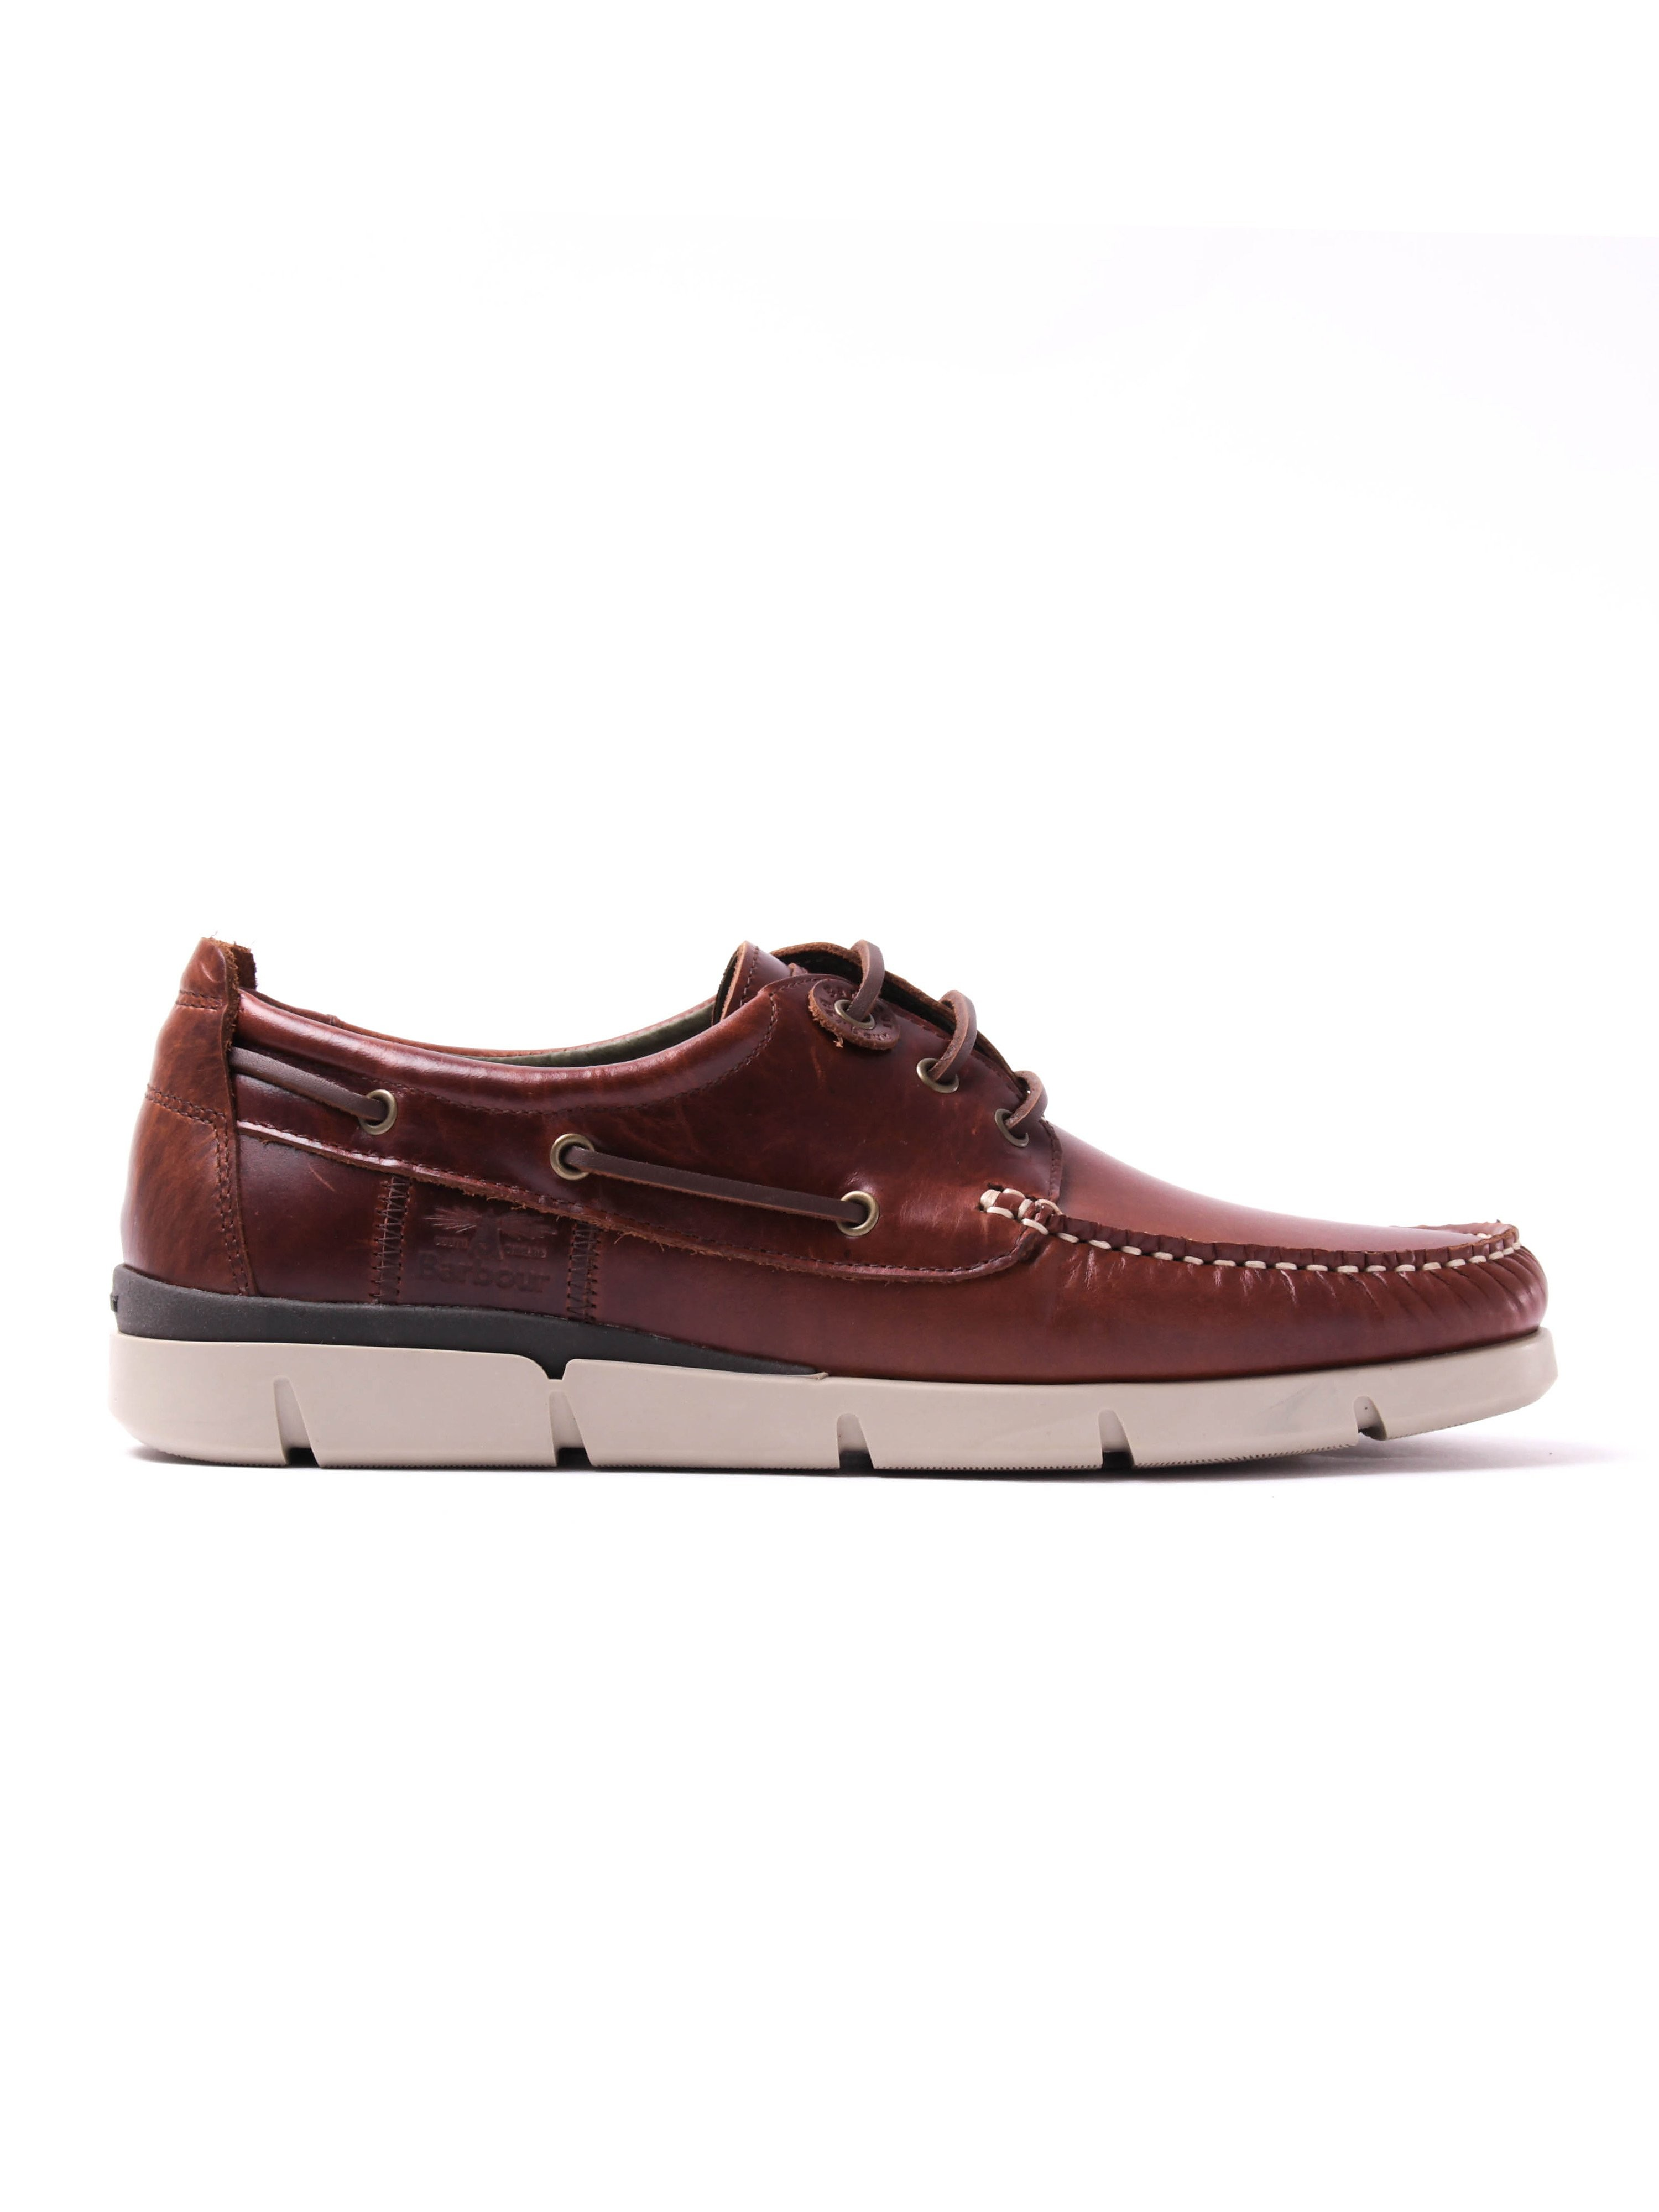 Barbour Men's George Oiled Leather Boat Shoes - Brown